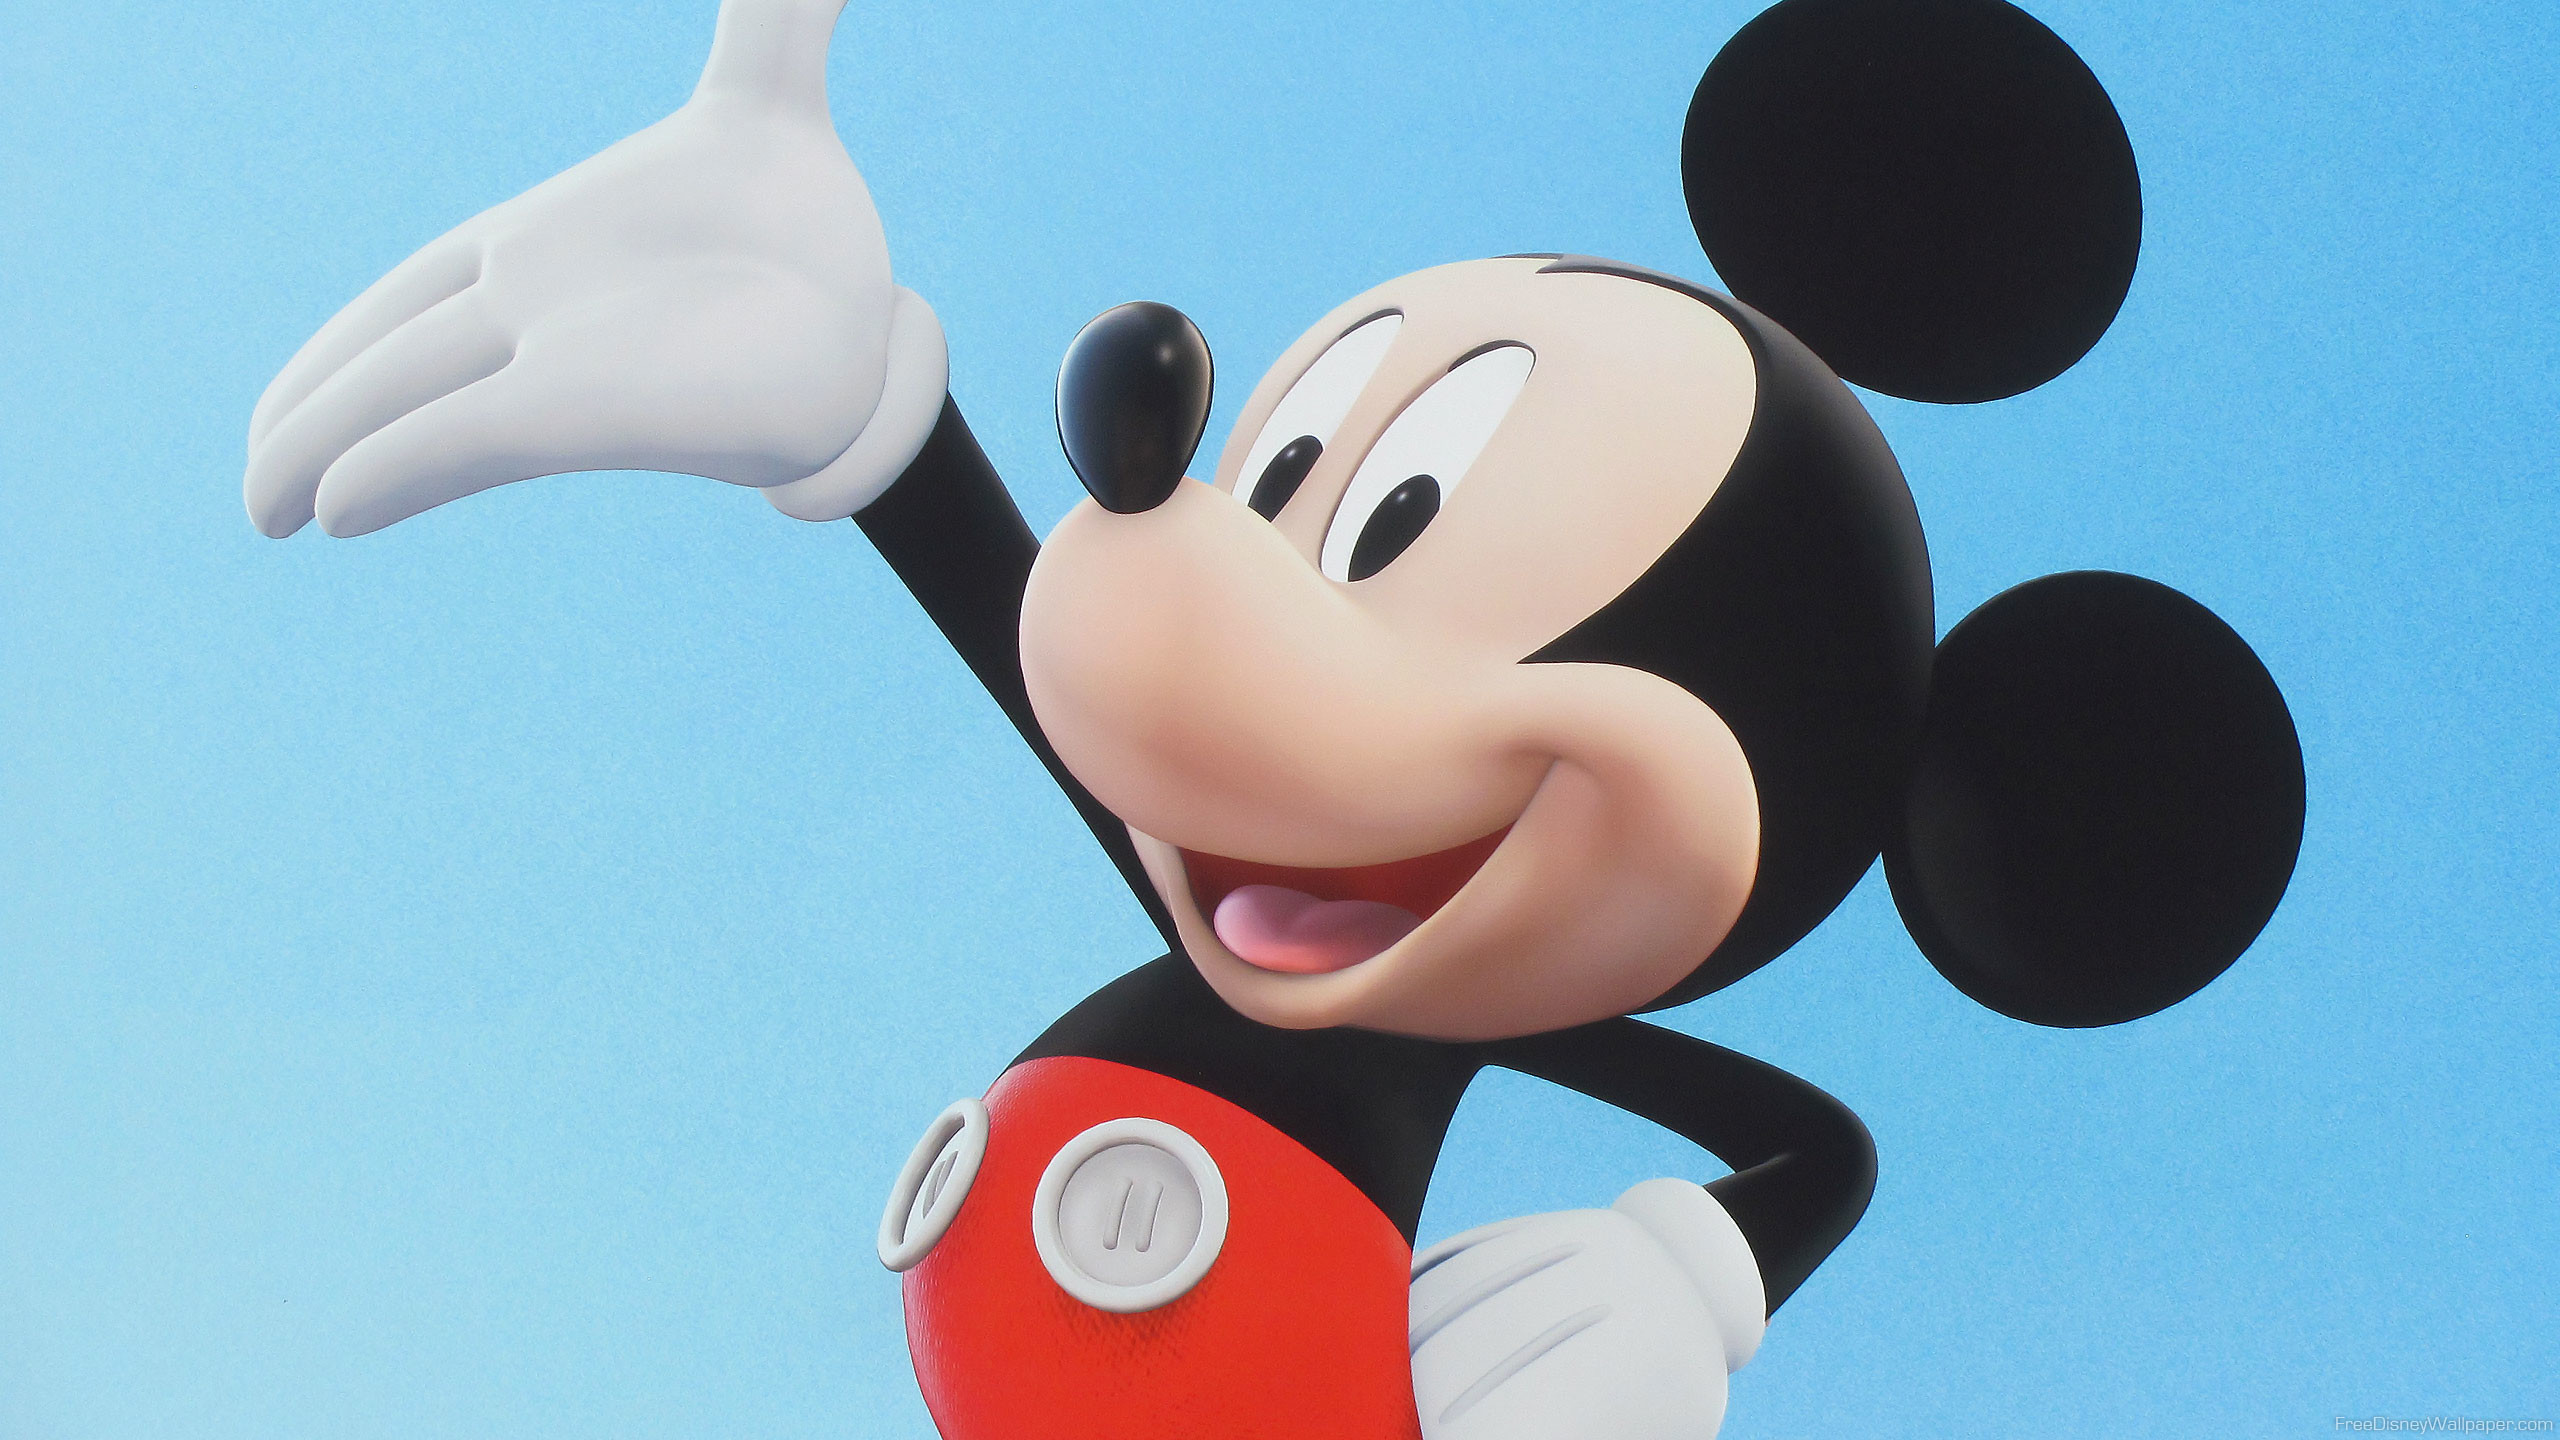 2560x1440 Mickey Mouse HD Wallpapers